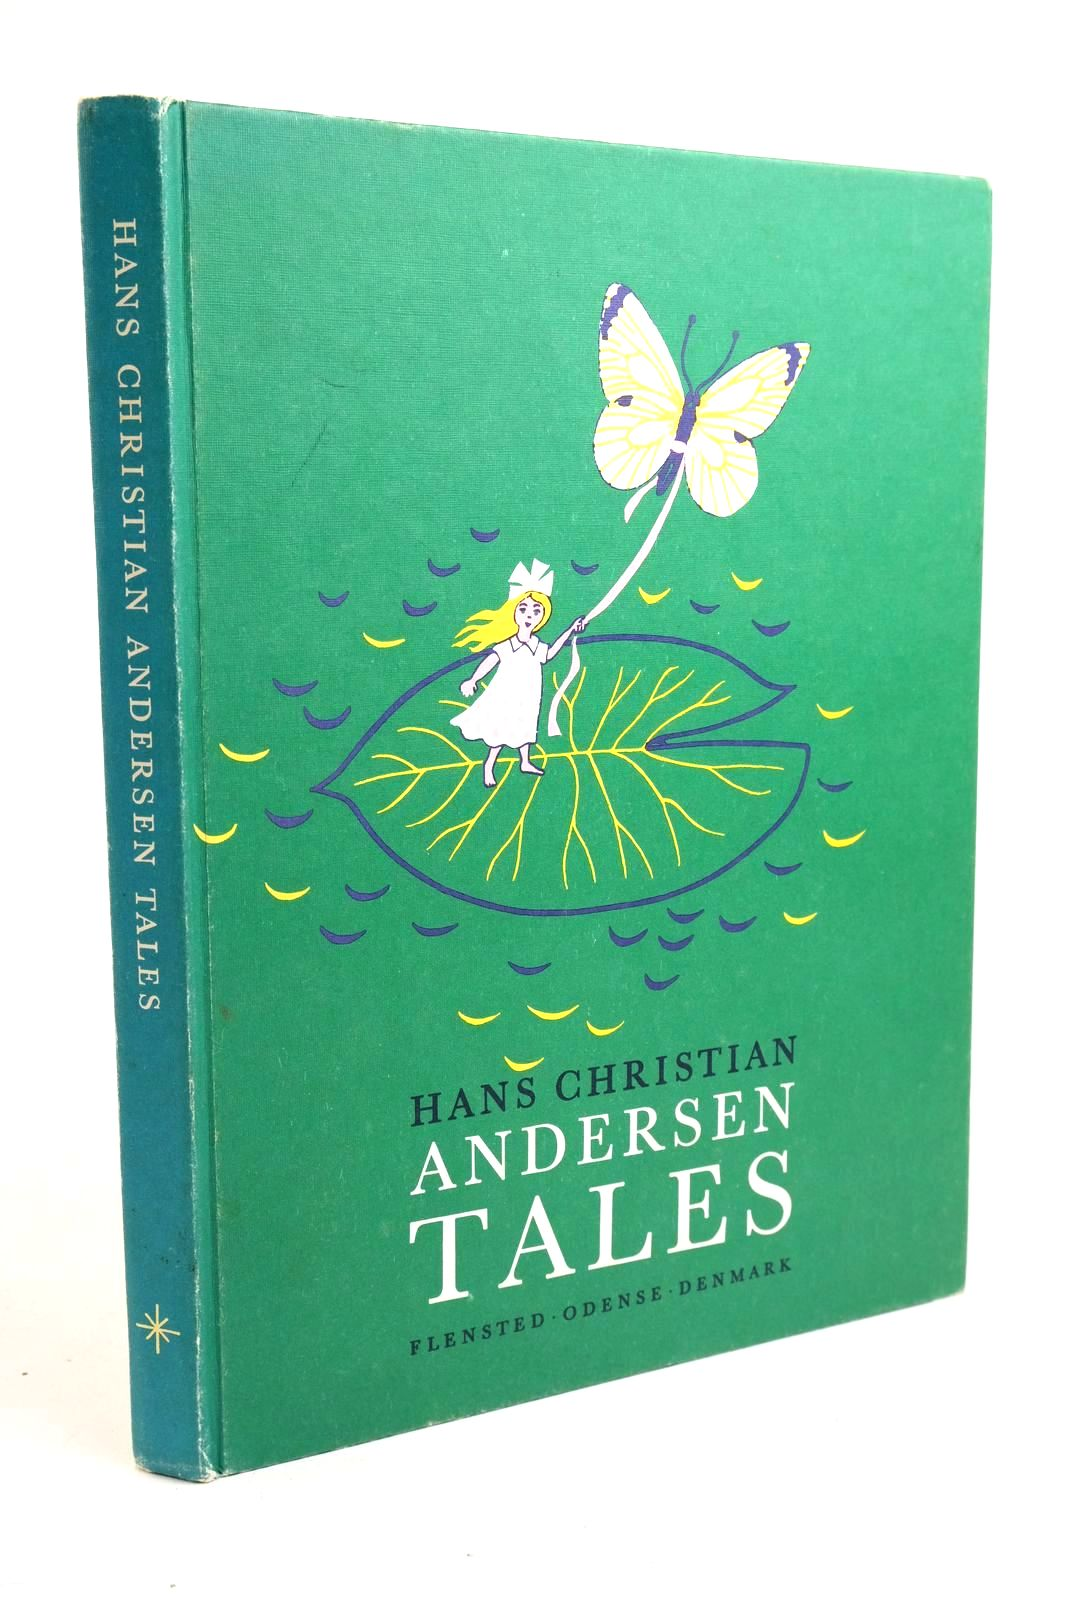 Photo of HANS CHRISTIAN ANDERSEN TALES written by Andersen, Hans Christian illustrated by Hjortlund, Gustav published by Flensted (STOCK CODE: 1321623)  for sale by Stella & Rose's Books